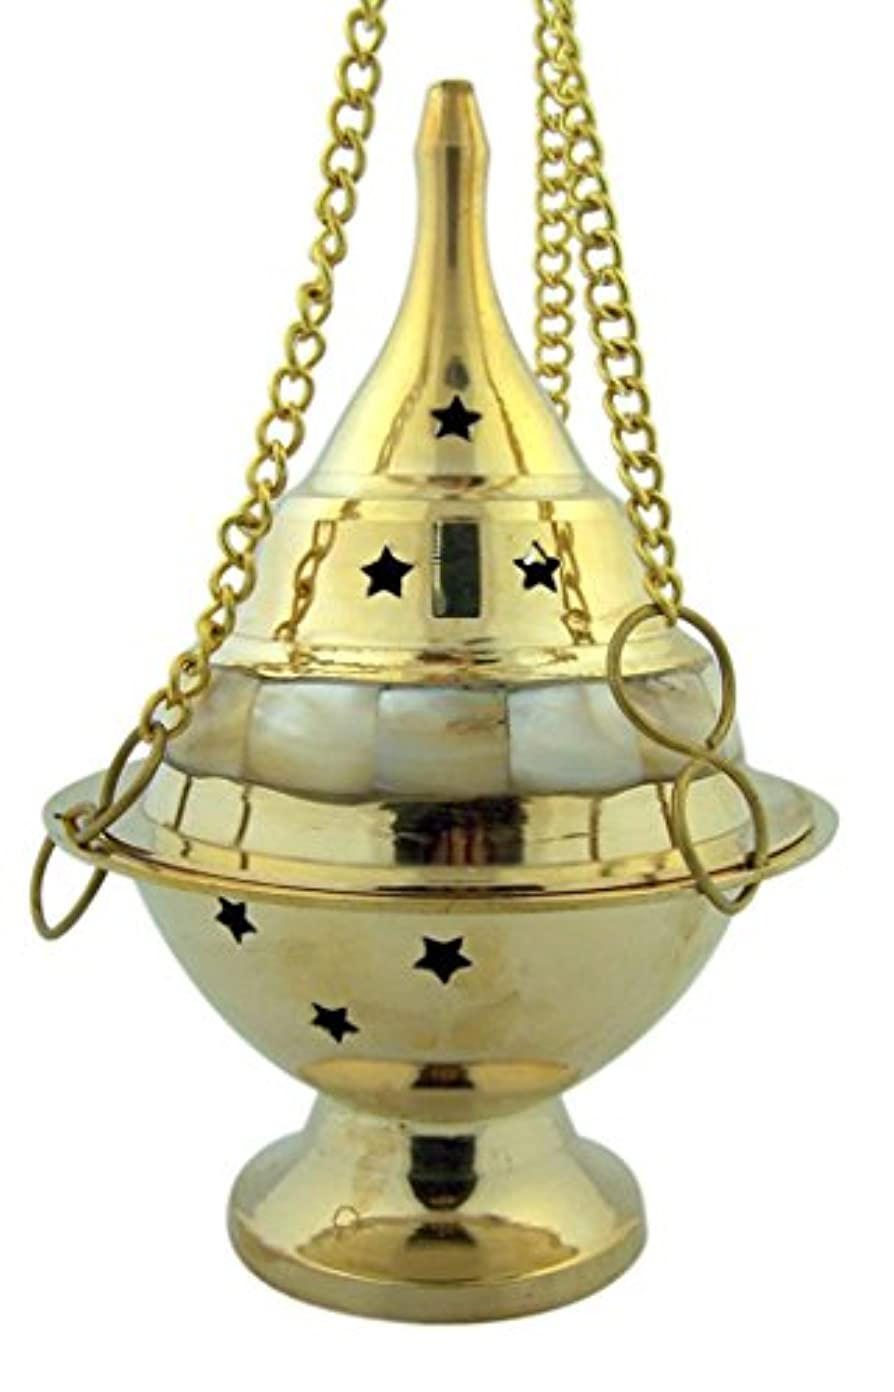 Brass and Mother of Pearl Enamel Hanging Incense Burner with Star Design, 16cm